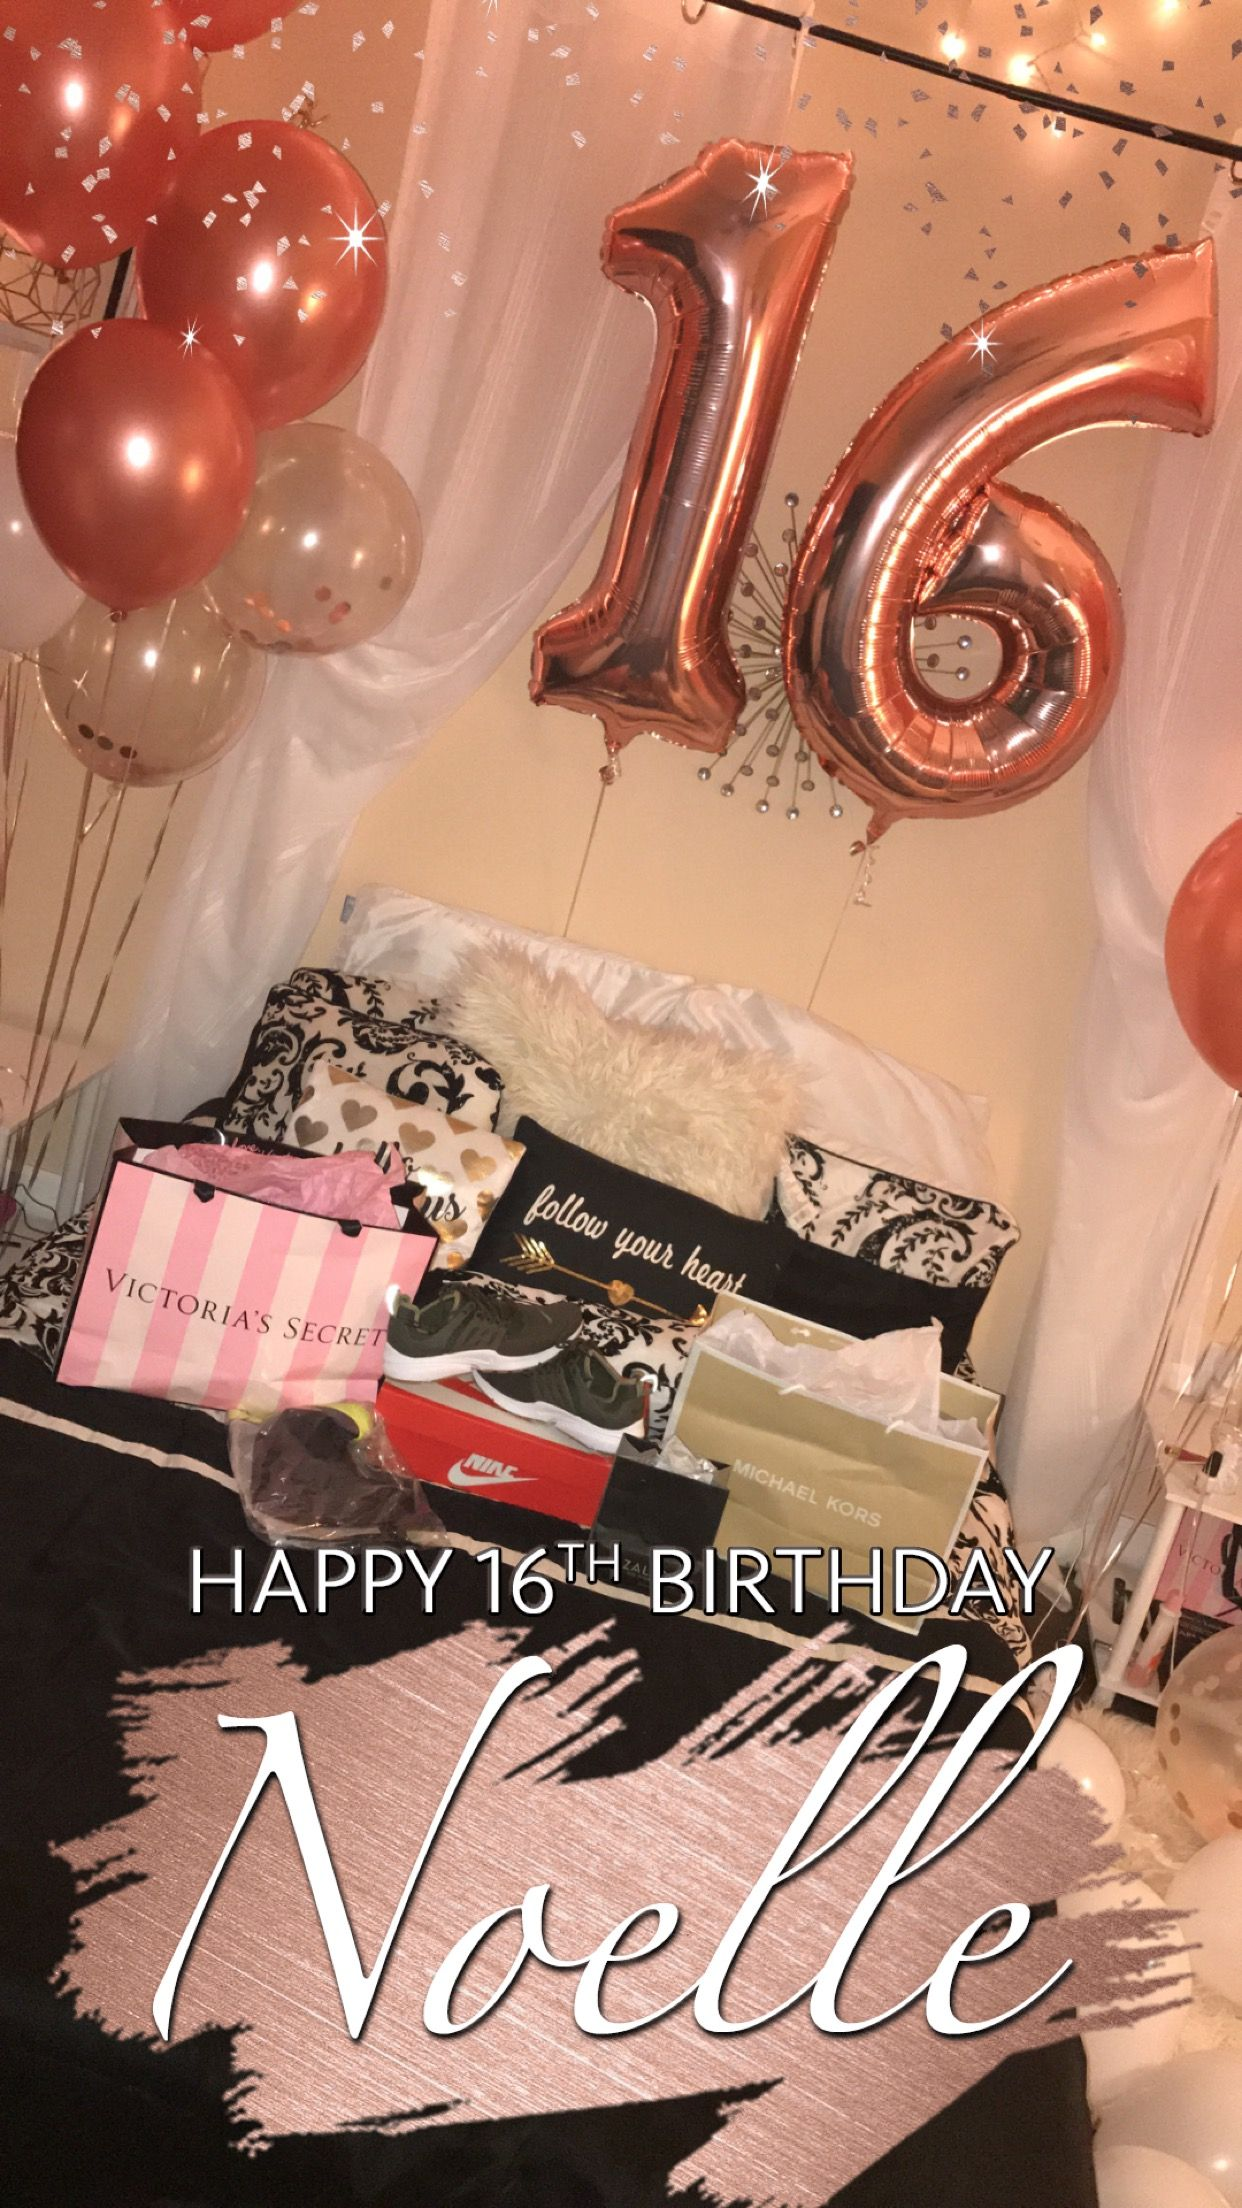 Balloons Gifts And Snapchat Filter Birthday Surprise For Sweet 16 Happy 16th Birthday 16th Birthday Party 16th Birthday